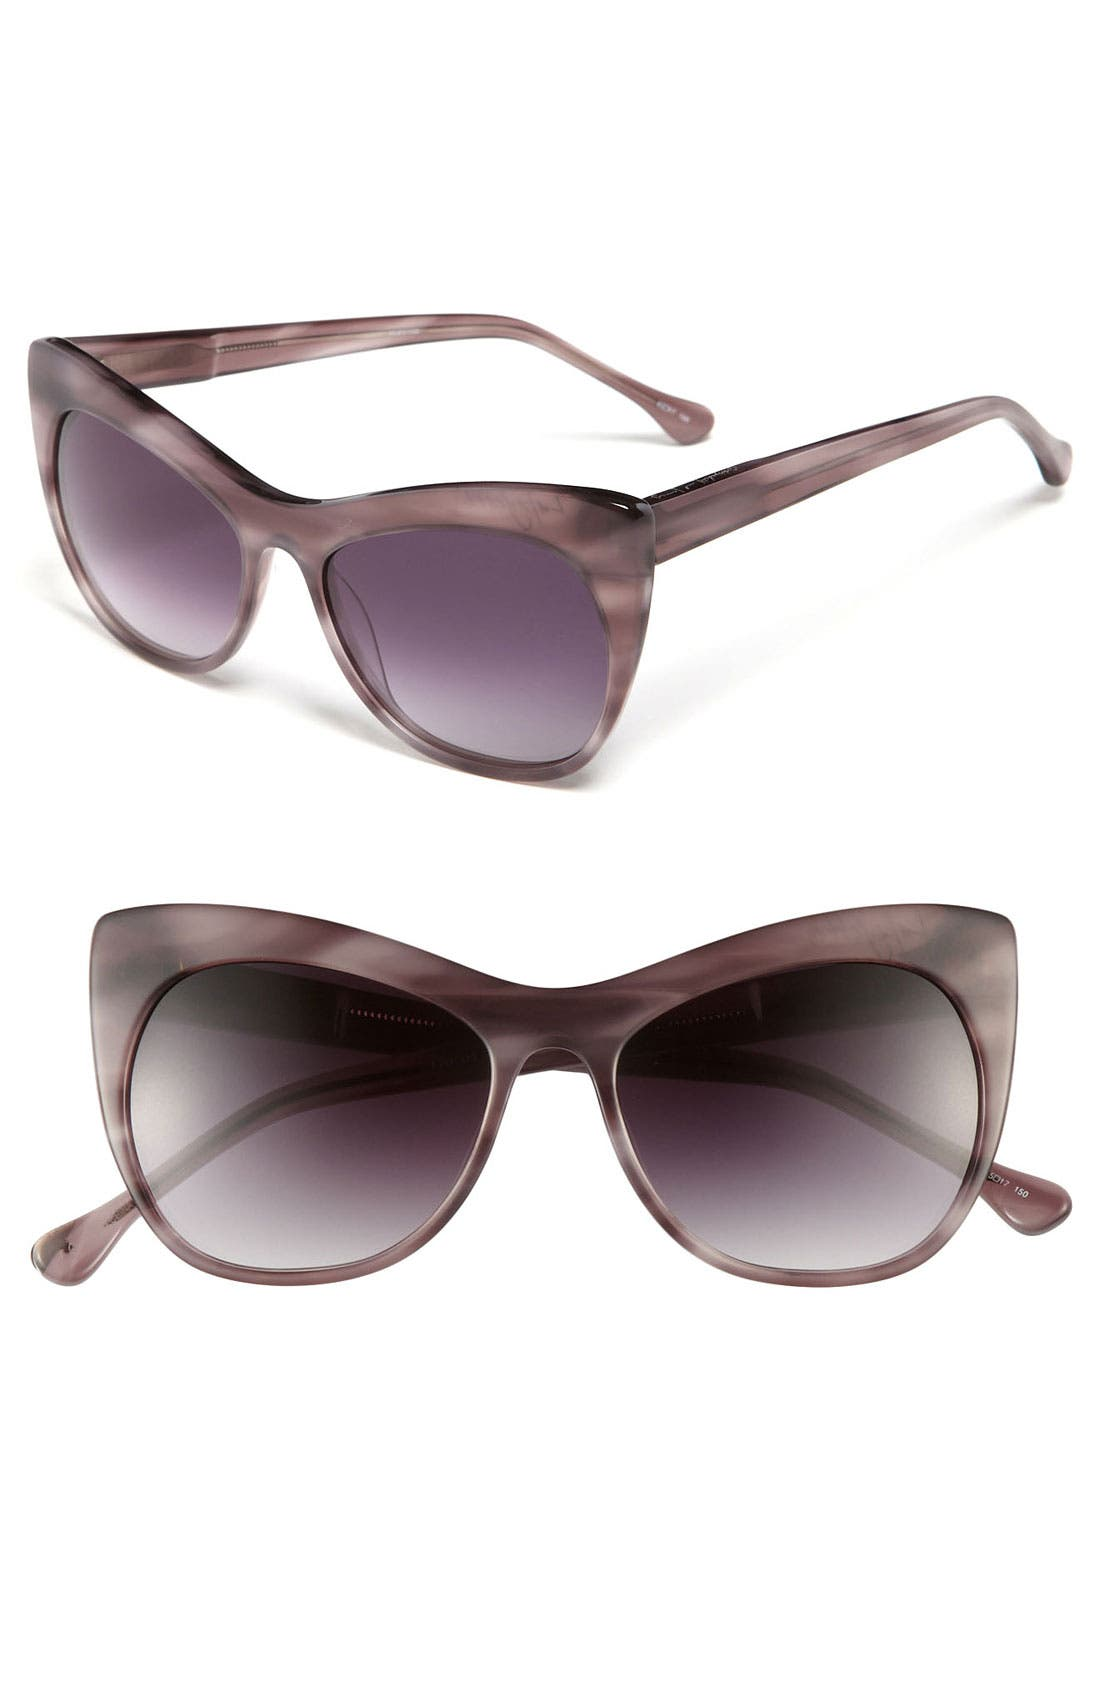 Main Image - Elizabeth and James 'Lafayette' 55mm Sunglasses